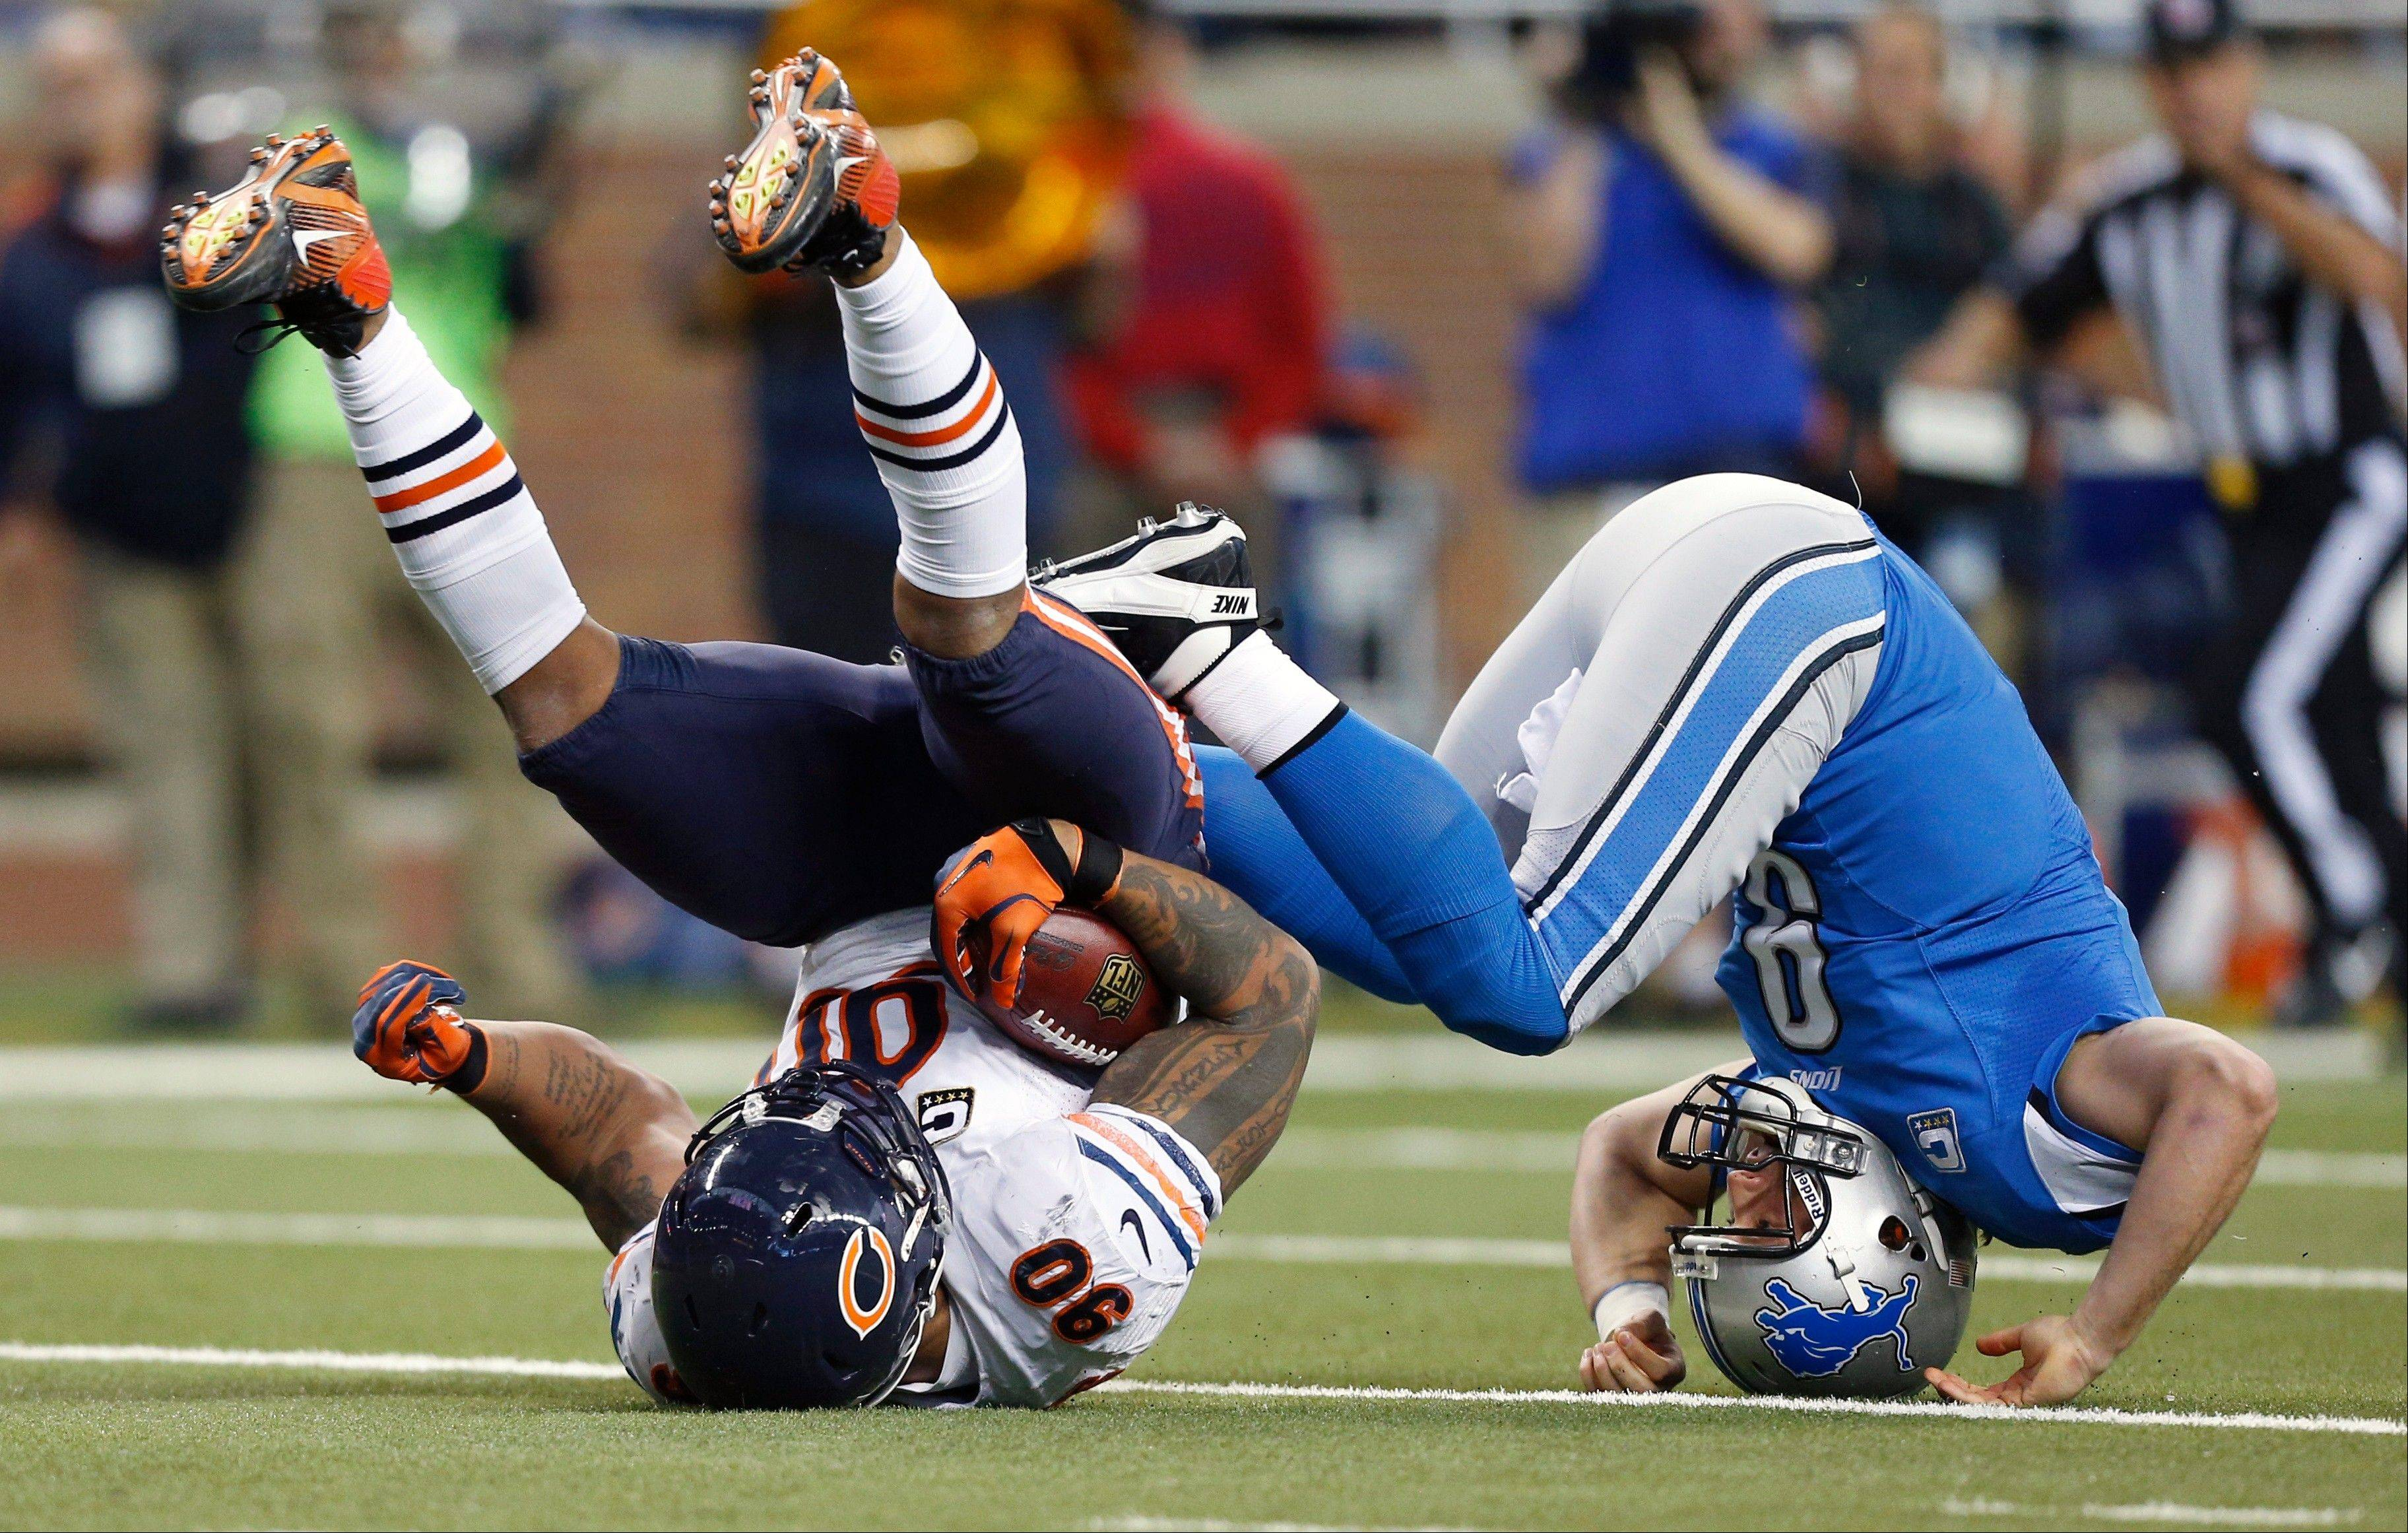 Chicago Bears defensive end Julius Peppers (90) recovers a loose ball and is stopped by Detroit Lions quarterback Matthew Stafford (9) during the second quarter.